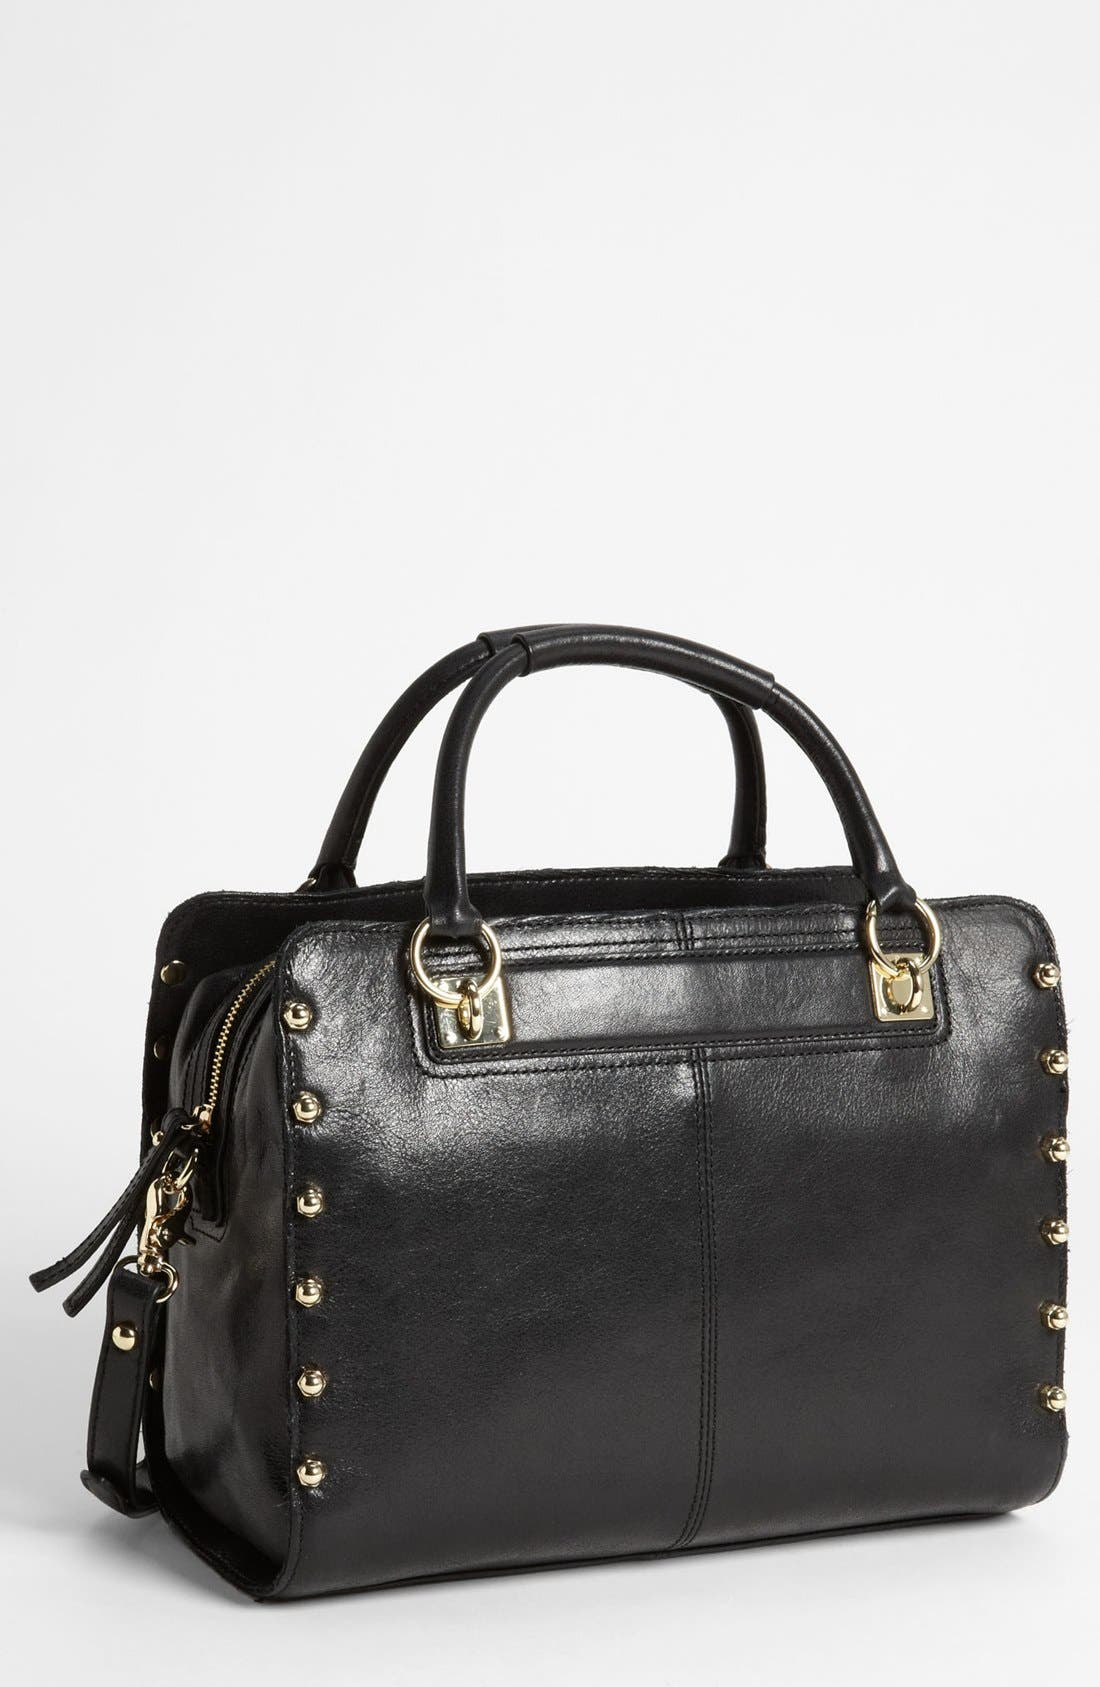 Main Image - Vince Camuto 'Bolts' Satchel